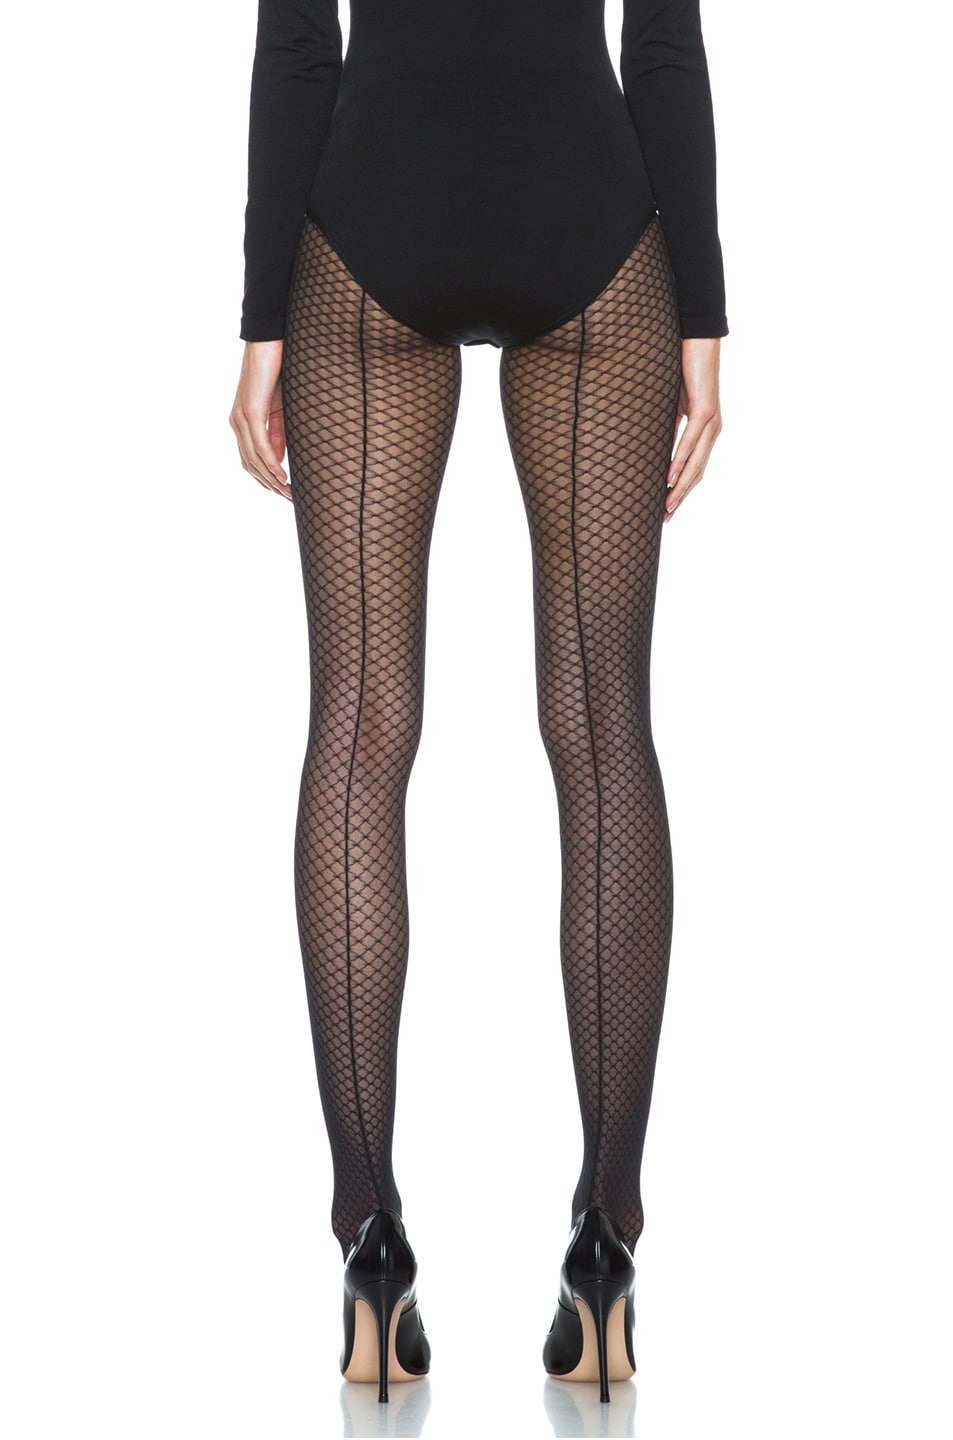 Image 1 of Wolford Iman Tights in Black